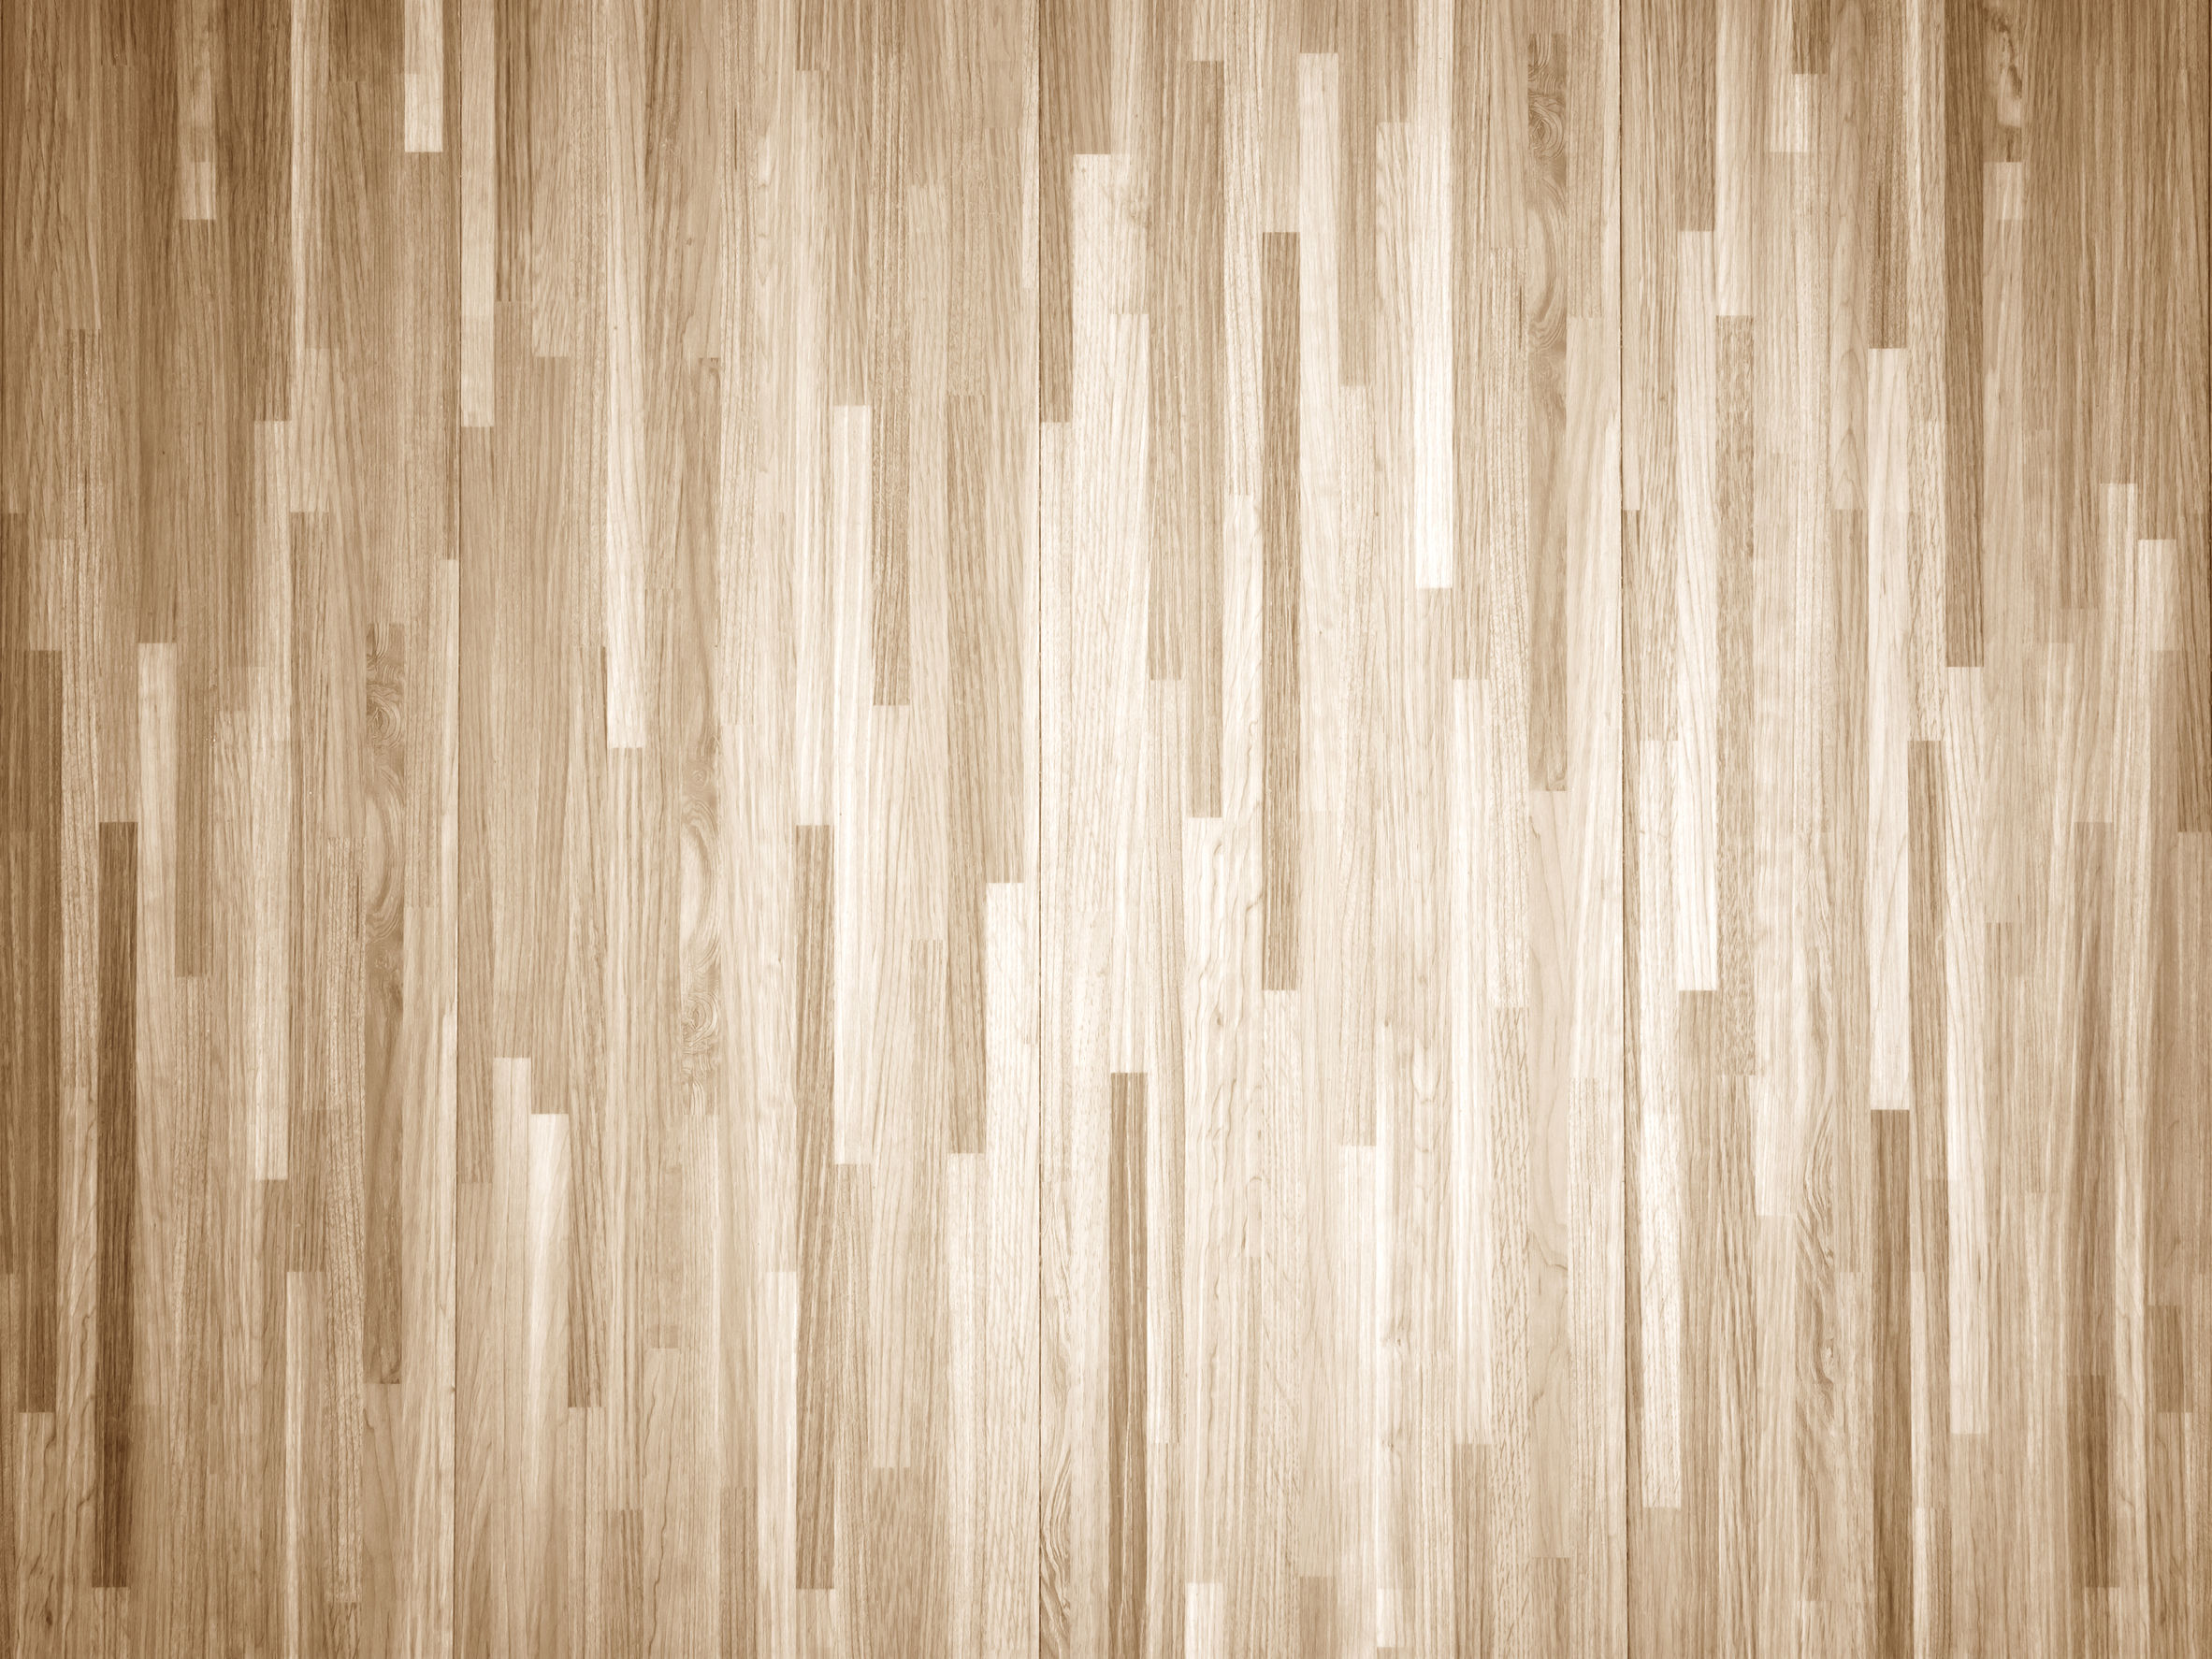 wooden floors candle how clean hardwood floor to wood from remove cleaning off wax laminate removing